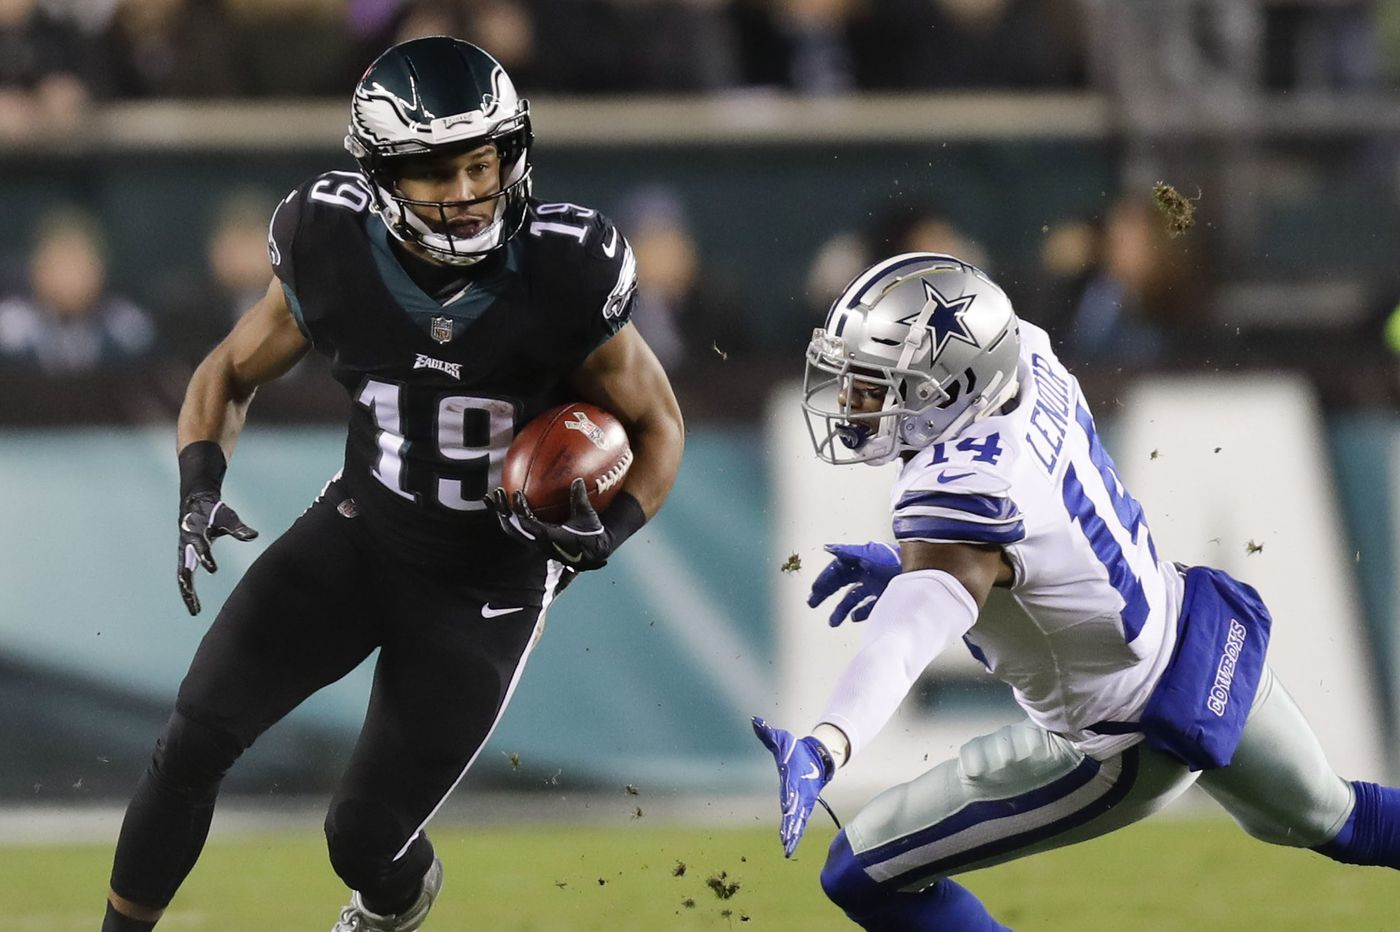 Five reasons the Eagles lost to the Cowboys